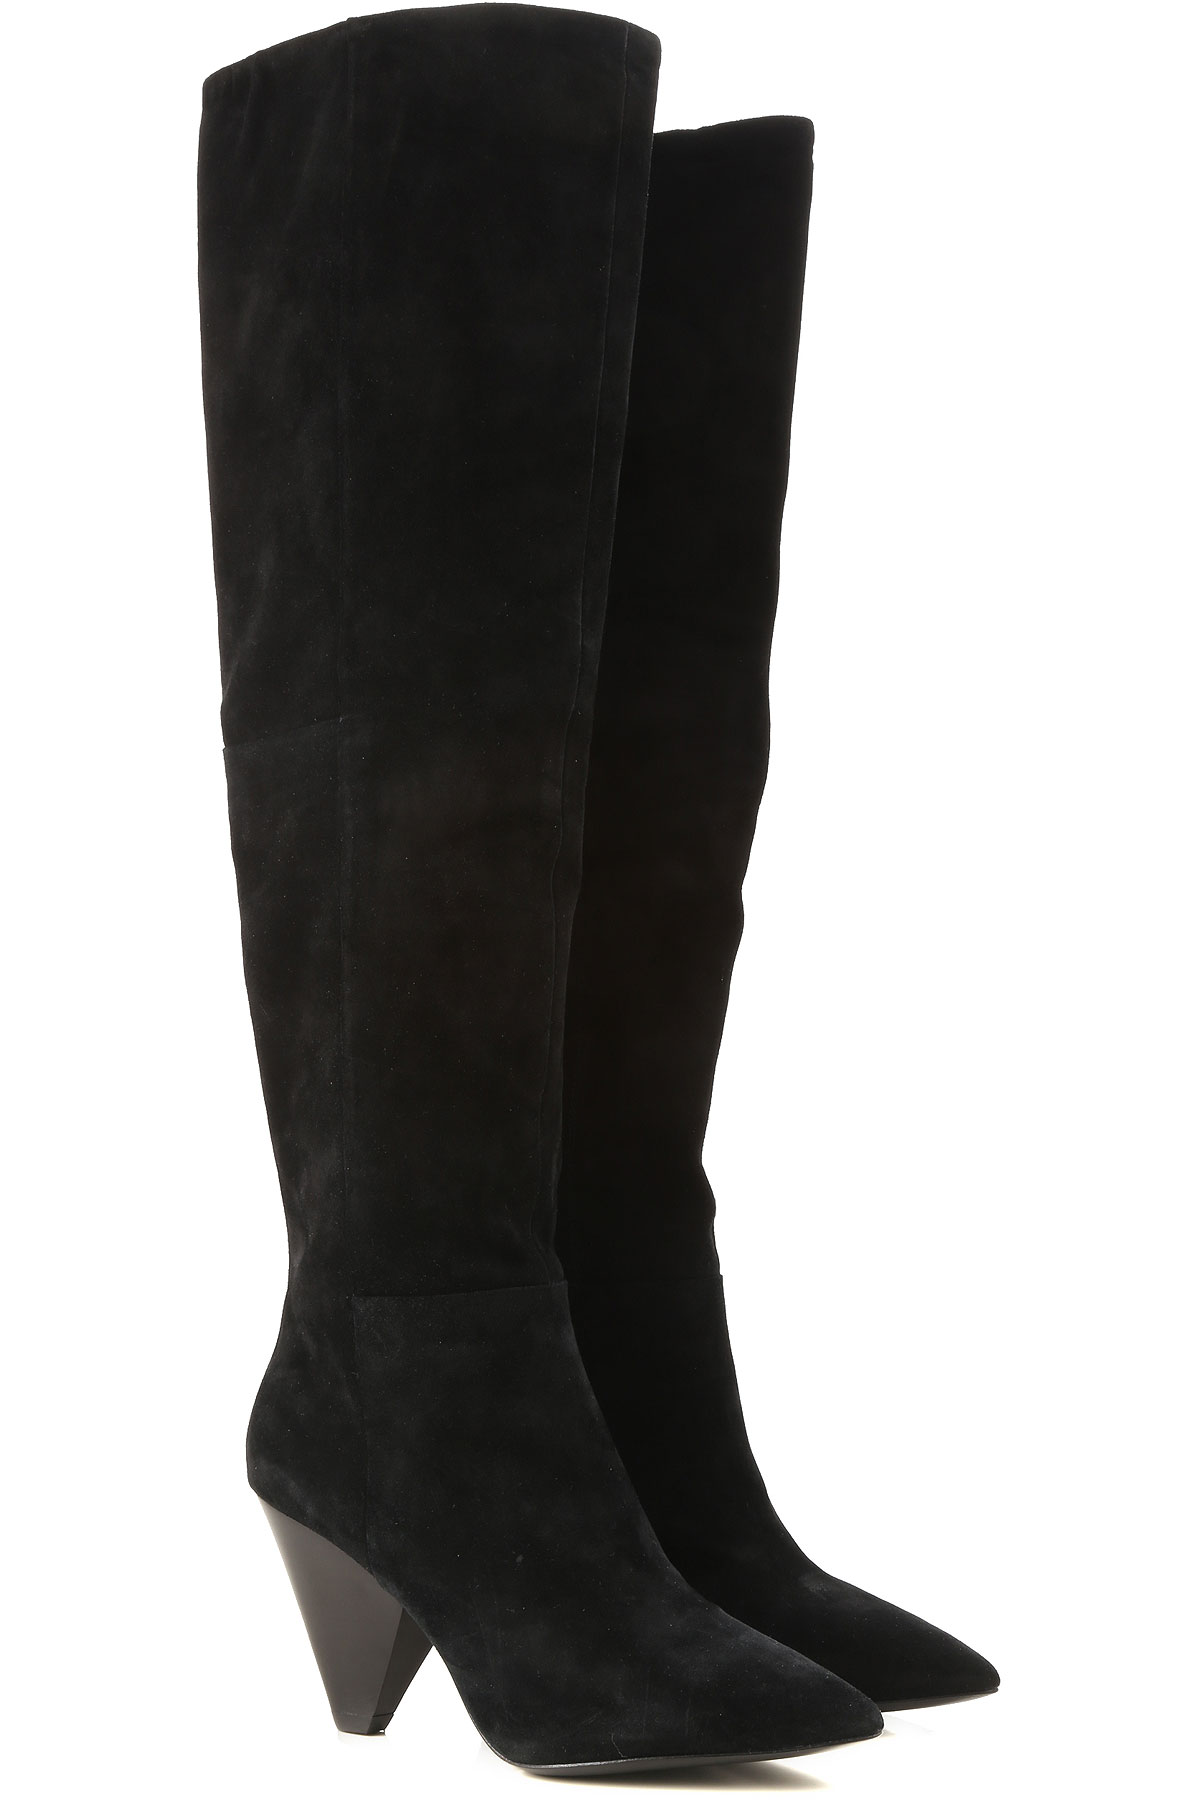 Image of Ash Boots for Women, Booties, Black, Suede leather, 2017, 10 6 7 8